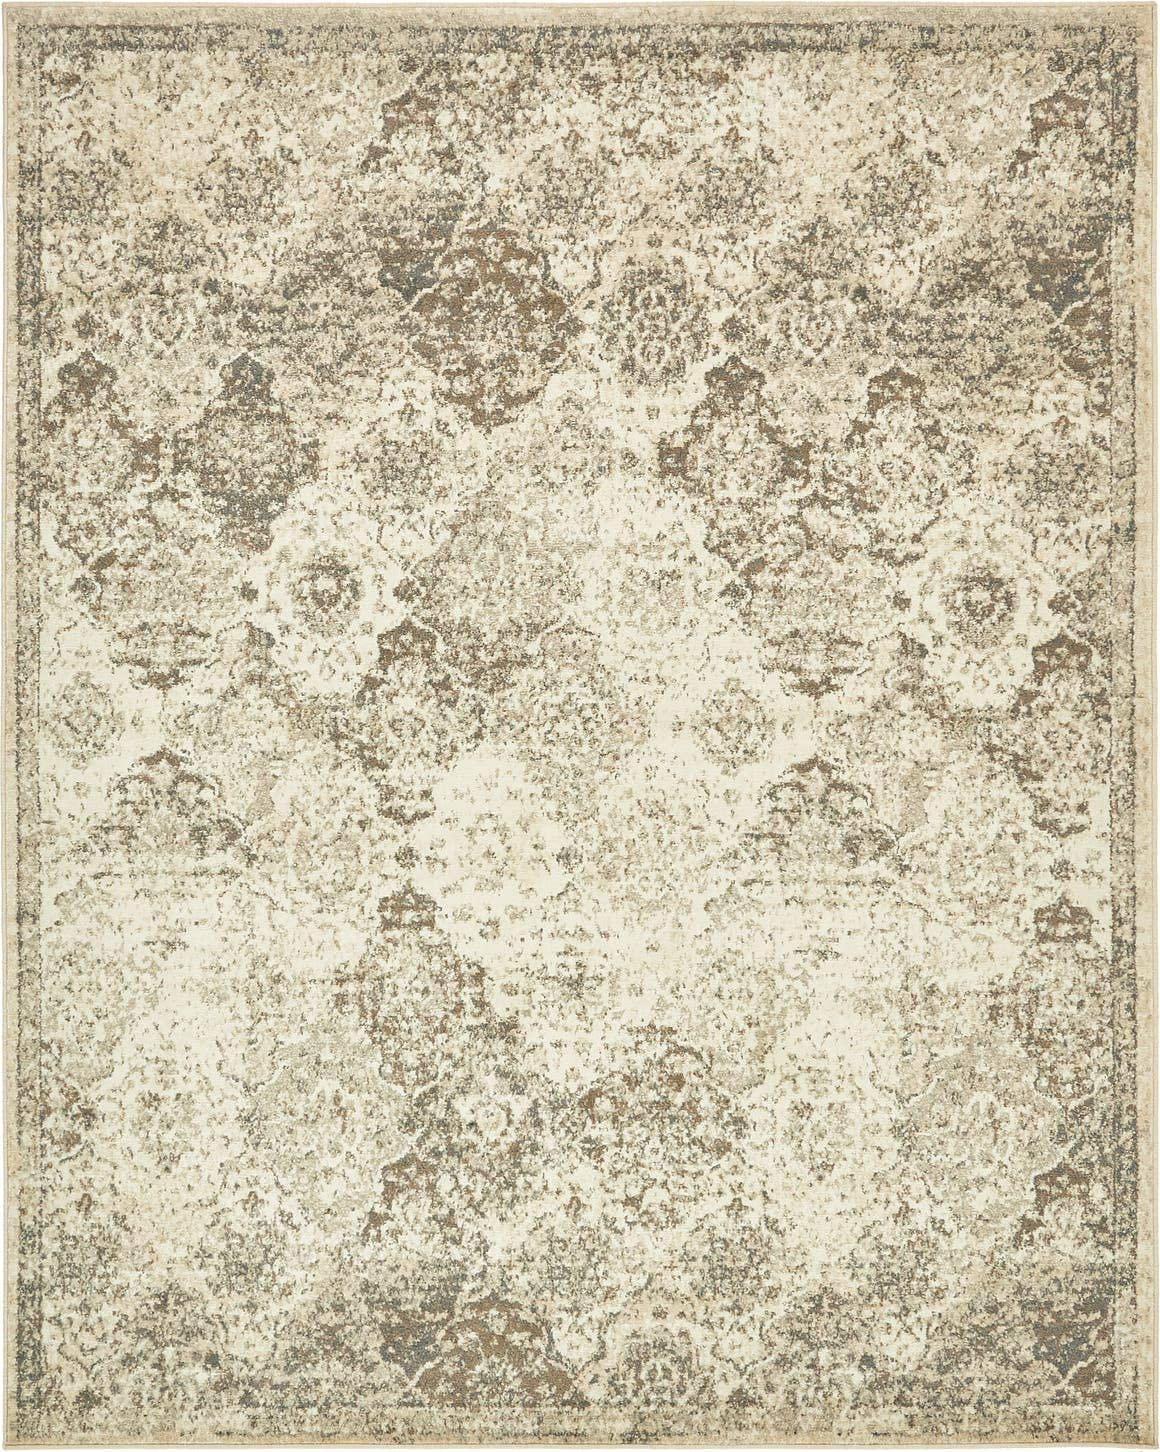 Unique Loom Tuareg Collection Vintage Distressed Traditional Beige Area Rug 8 0 x 10 0